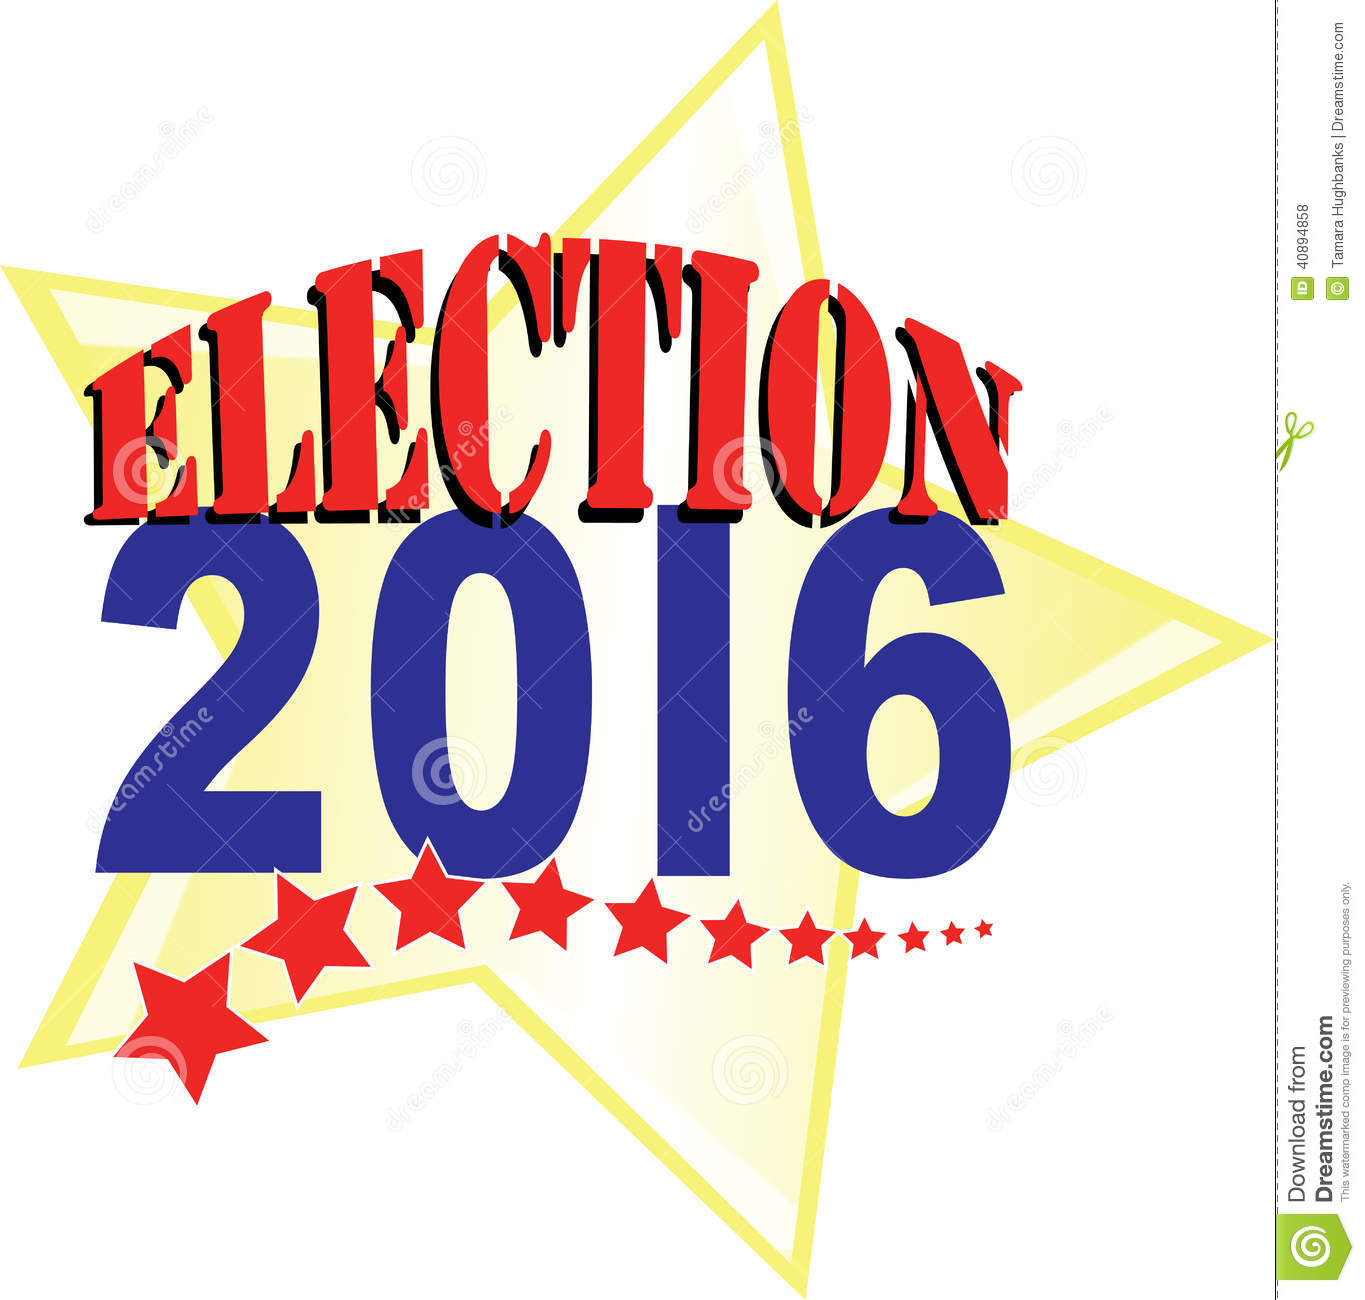 US presidential election, when they? - November 8, 2016 release date